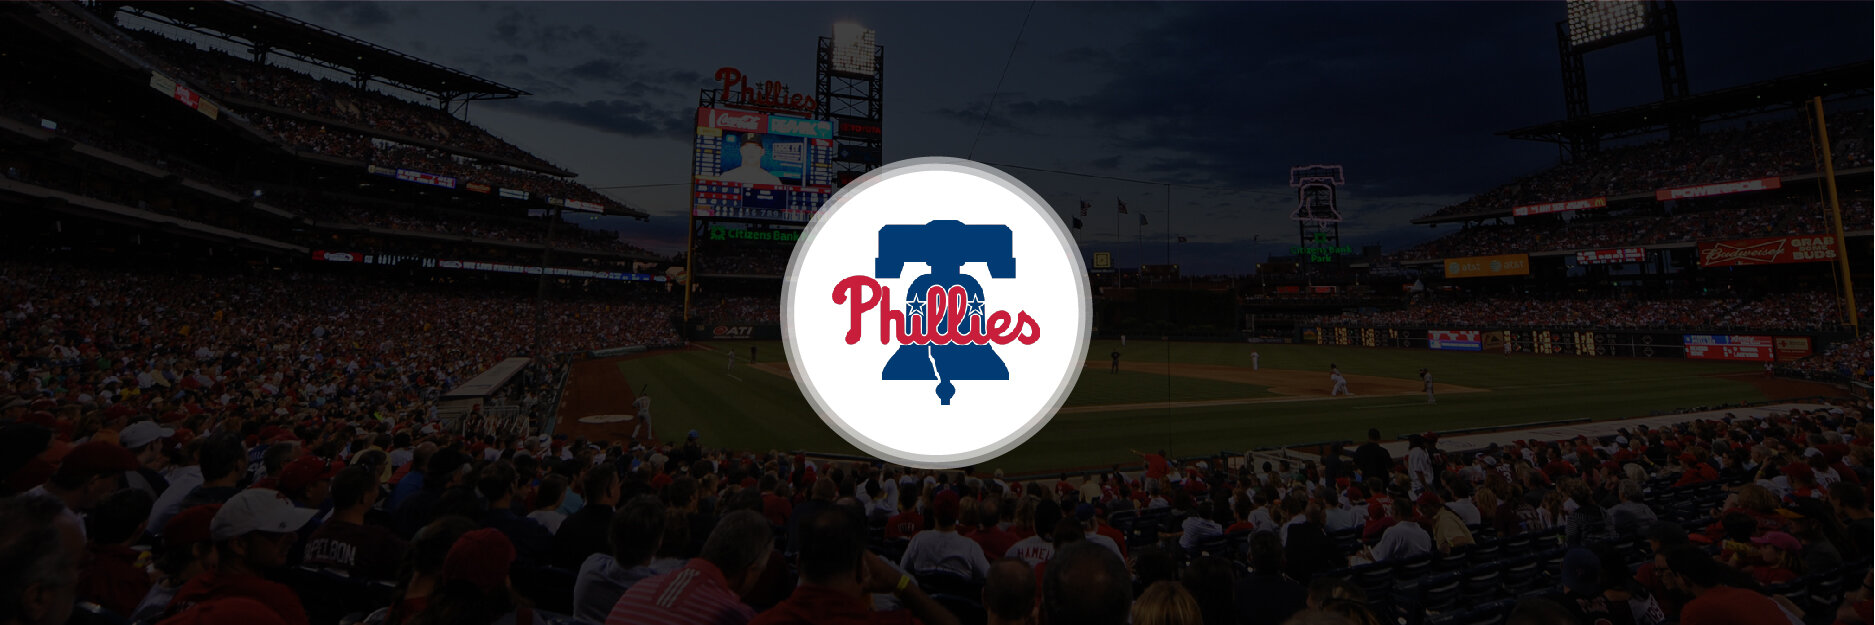 Philadelphia Phillies Analysis Before 2020 Season Start